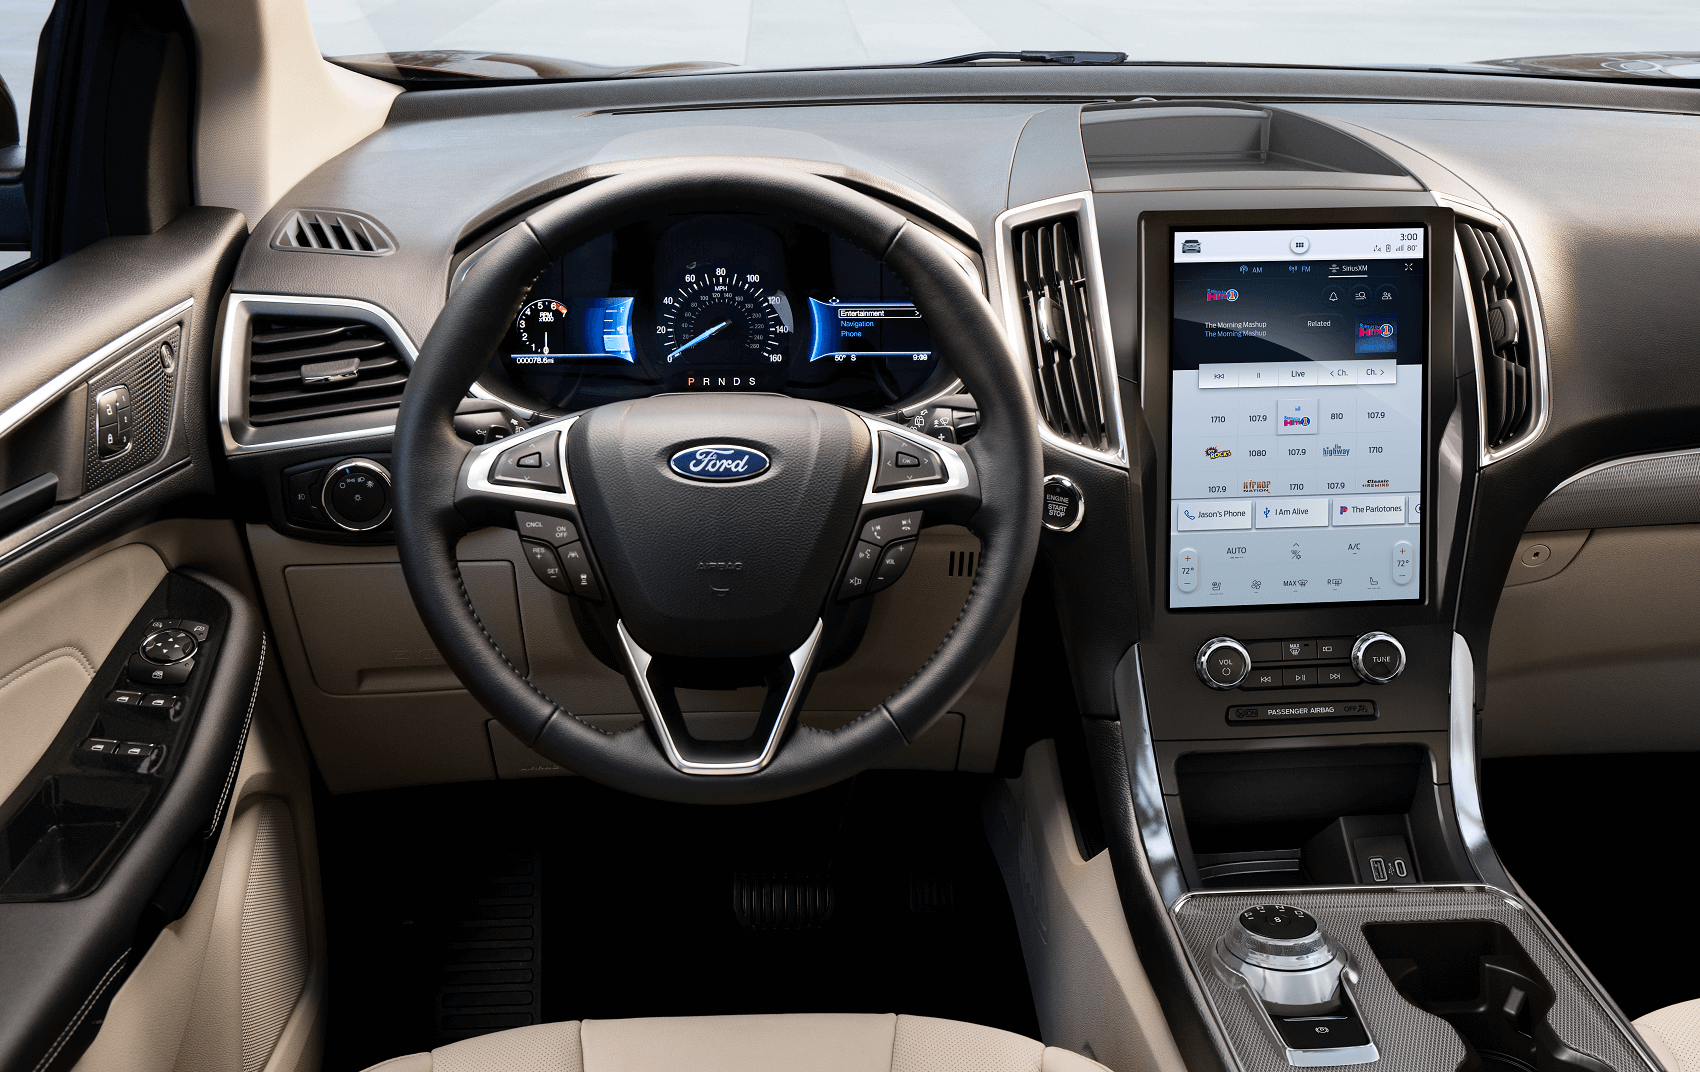 Ford Edge Safety Technology